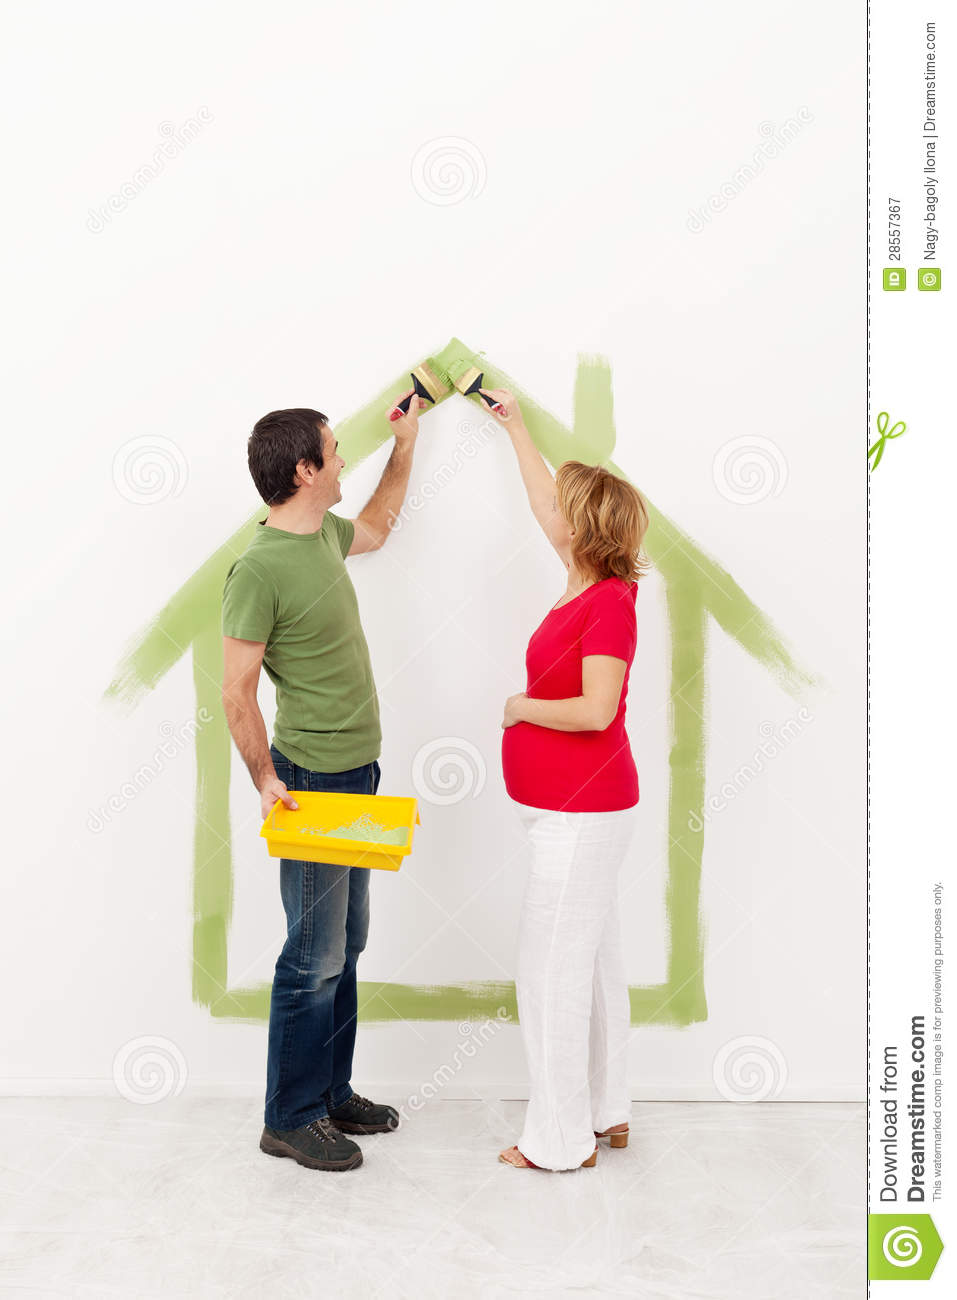 Couple Expecting A Baby Painting Their Home Stock Image